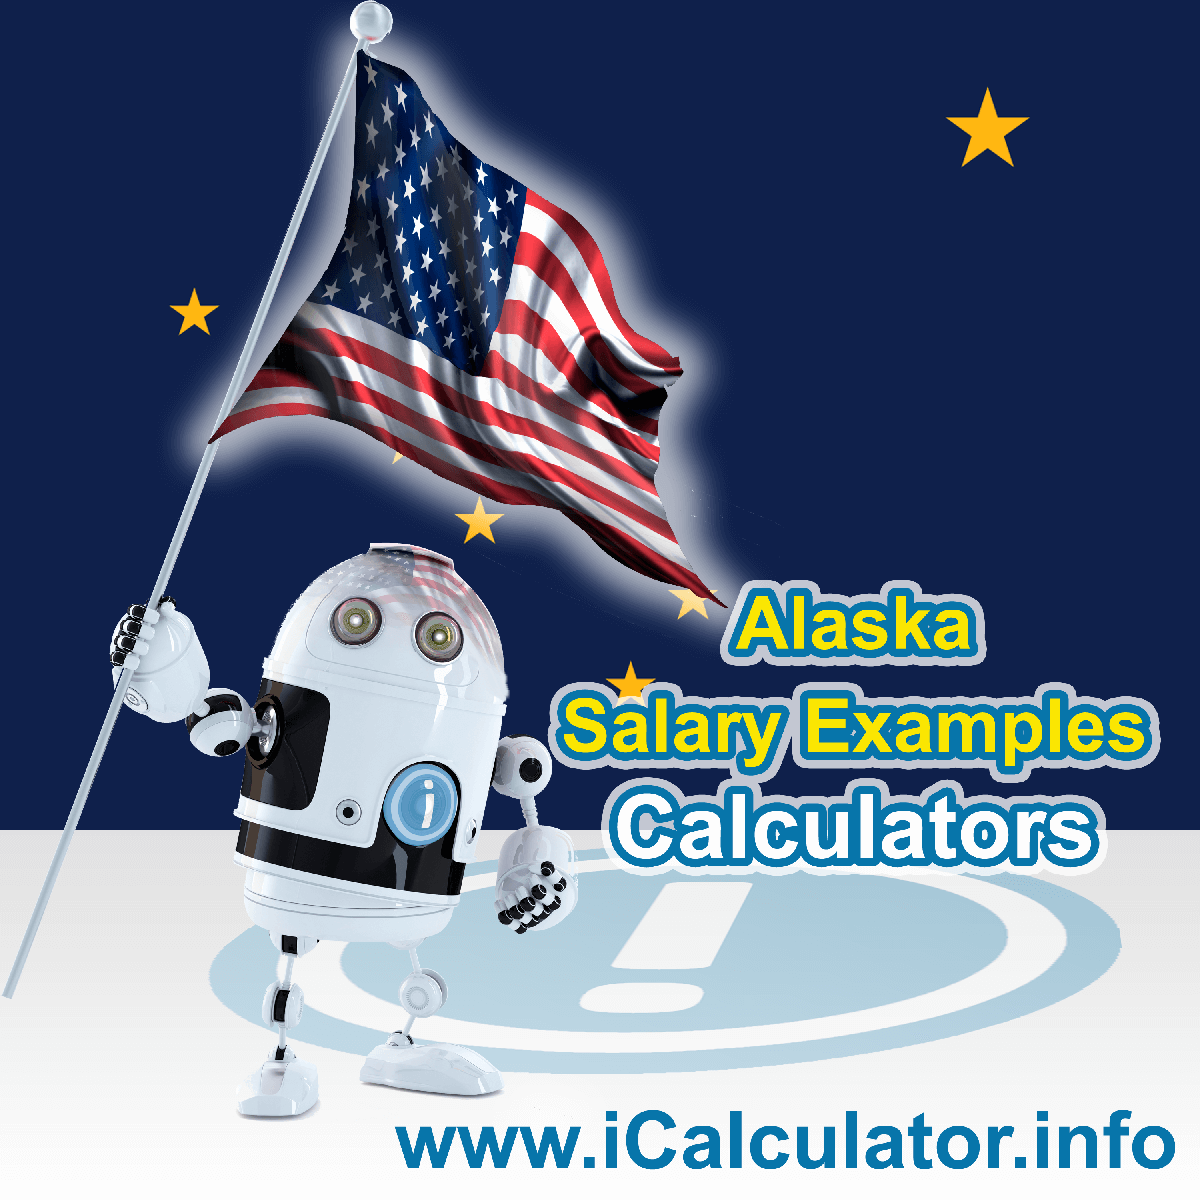 Alaska Salary Example for $20,000.00 in 2020 | iCalculator | $20,000.00 salary example for employee and employer paying Alaska State tincome taxes. Detailed salary after tax calculation including Alaska State Tax, Federal State Tax, Medicare Deductions, Social Security, Capital Gains and other income tax and salary deductions complete with supporting Alaska state tax tables